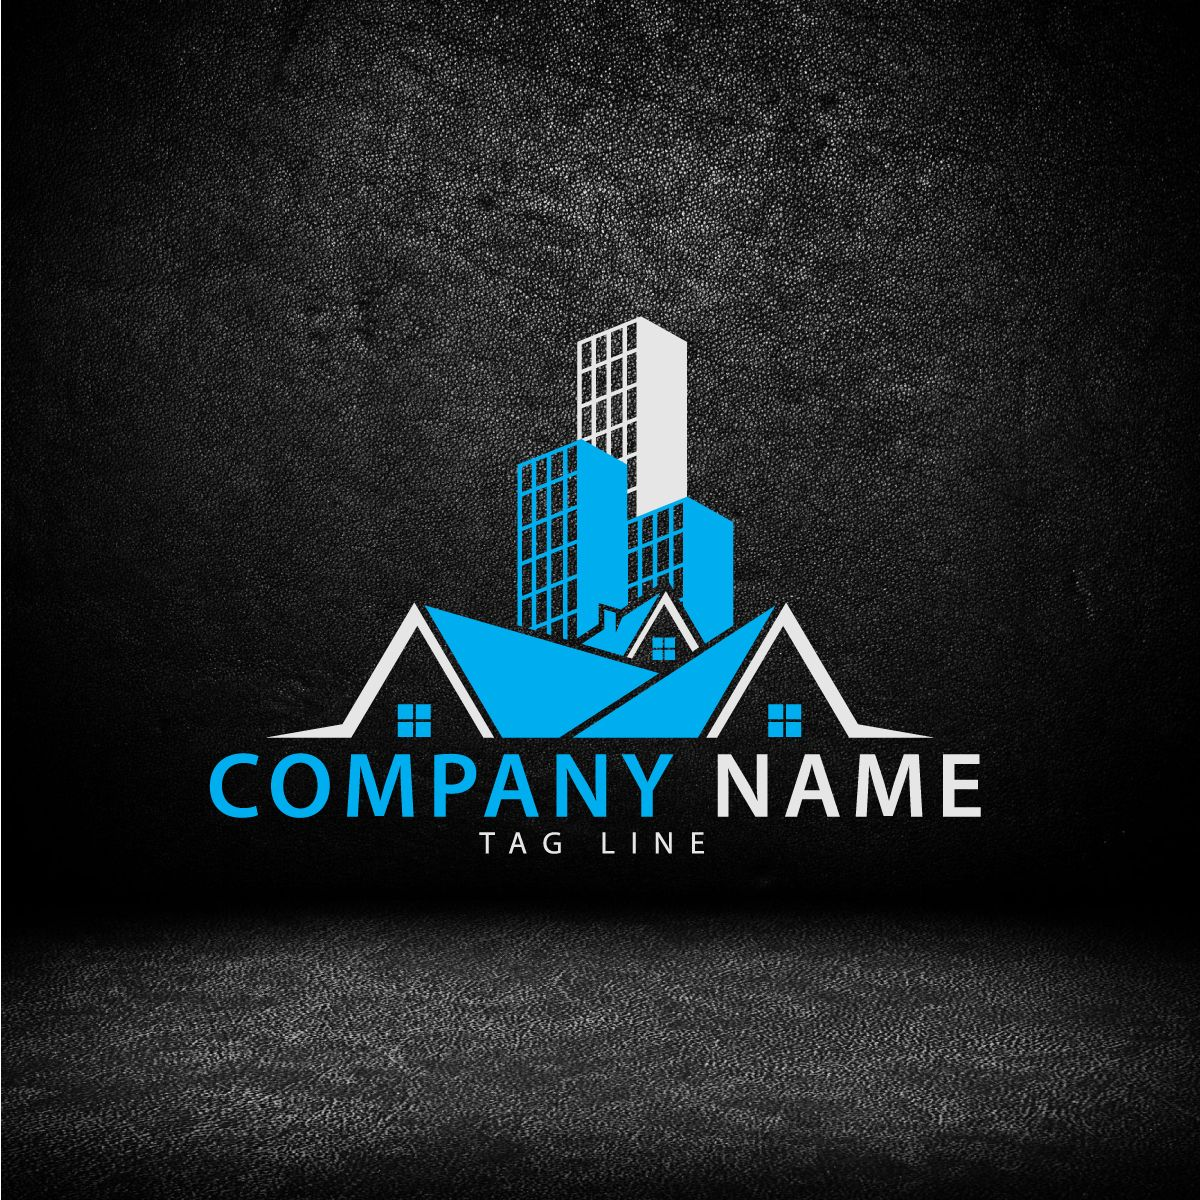 Free Professional Real Estate Company Logo Download in